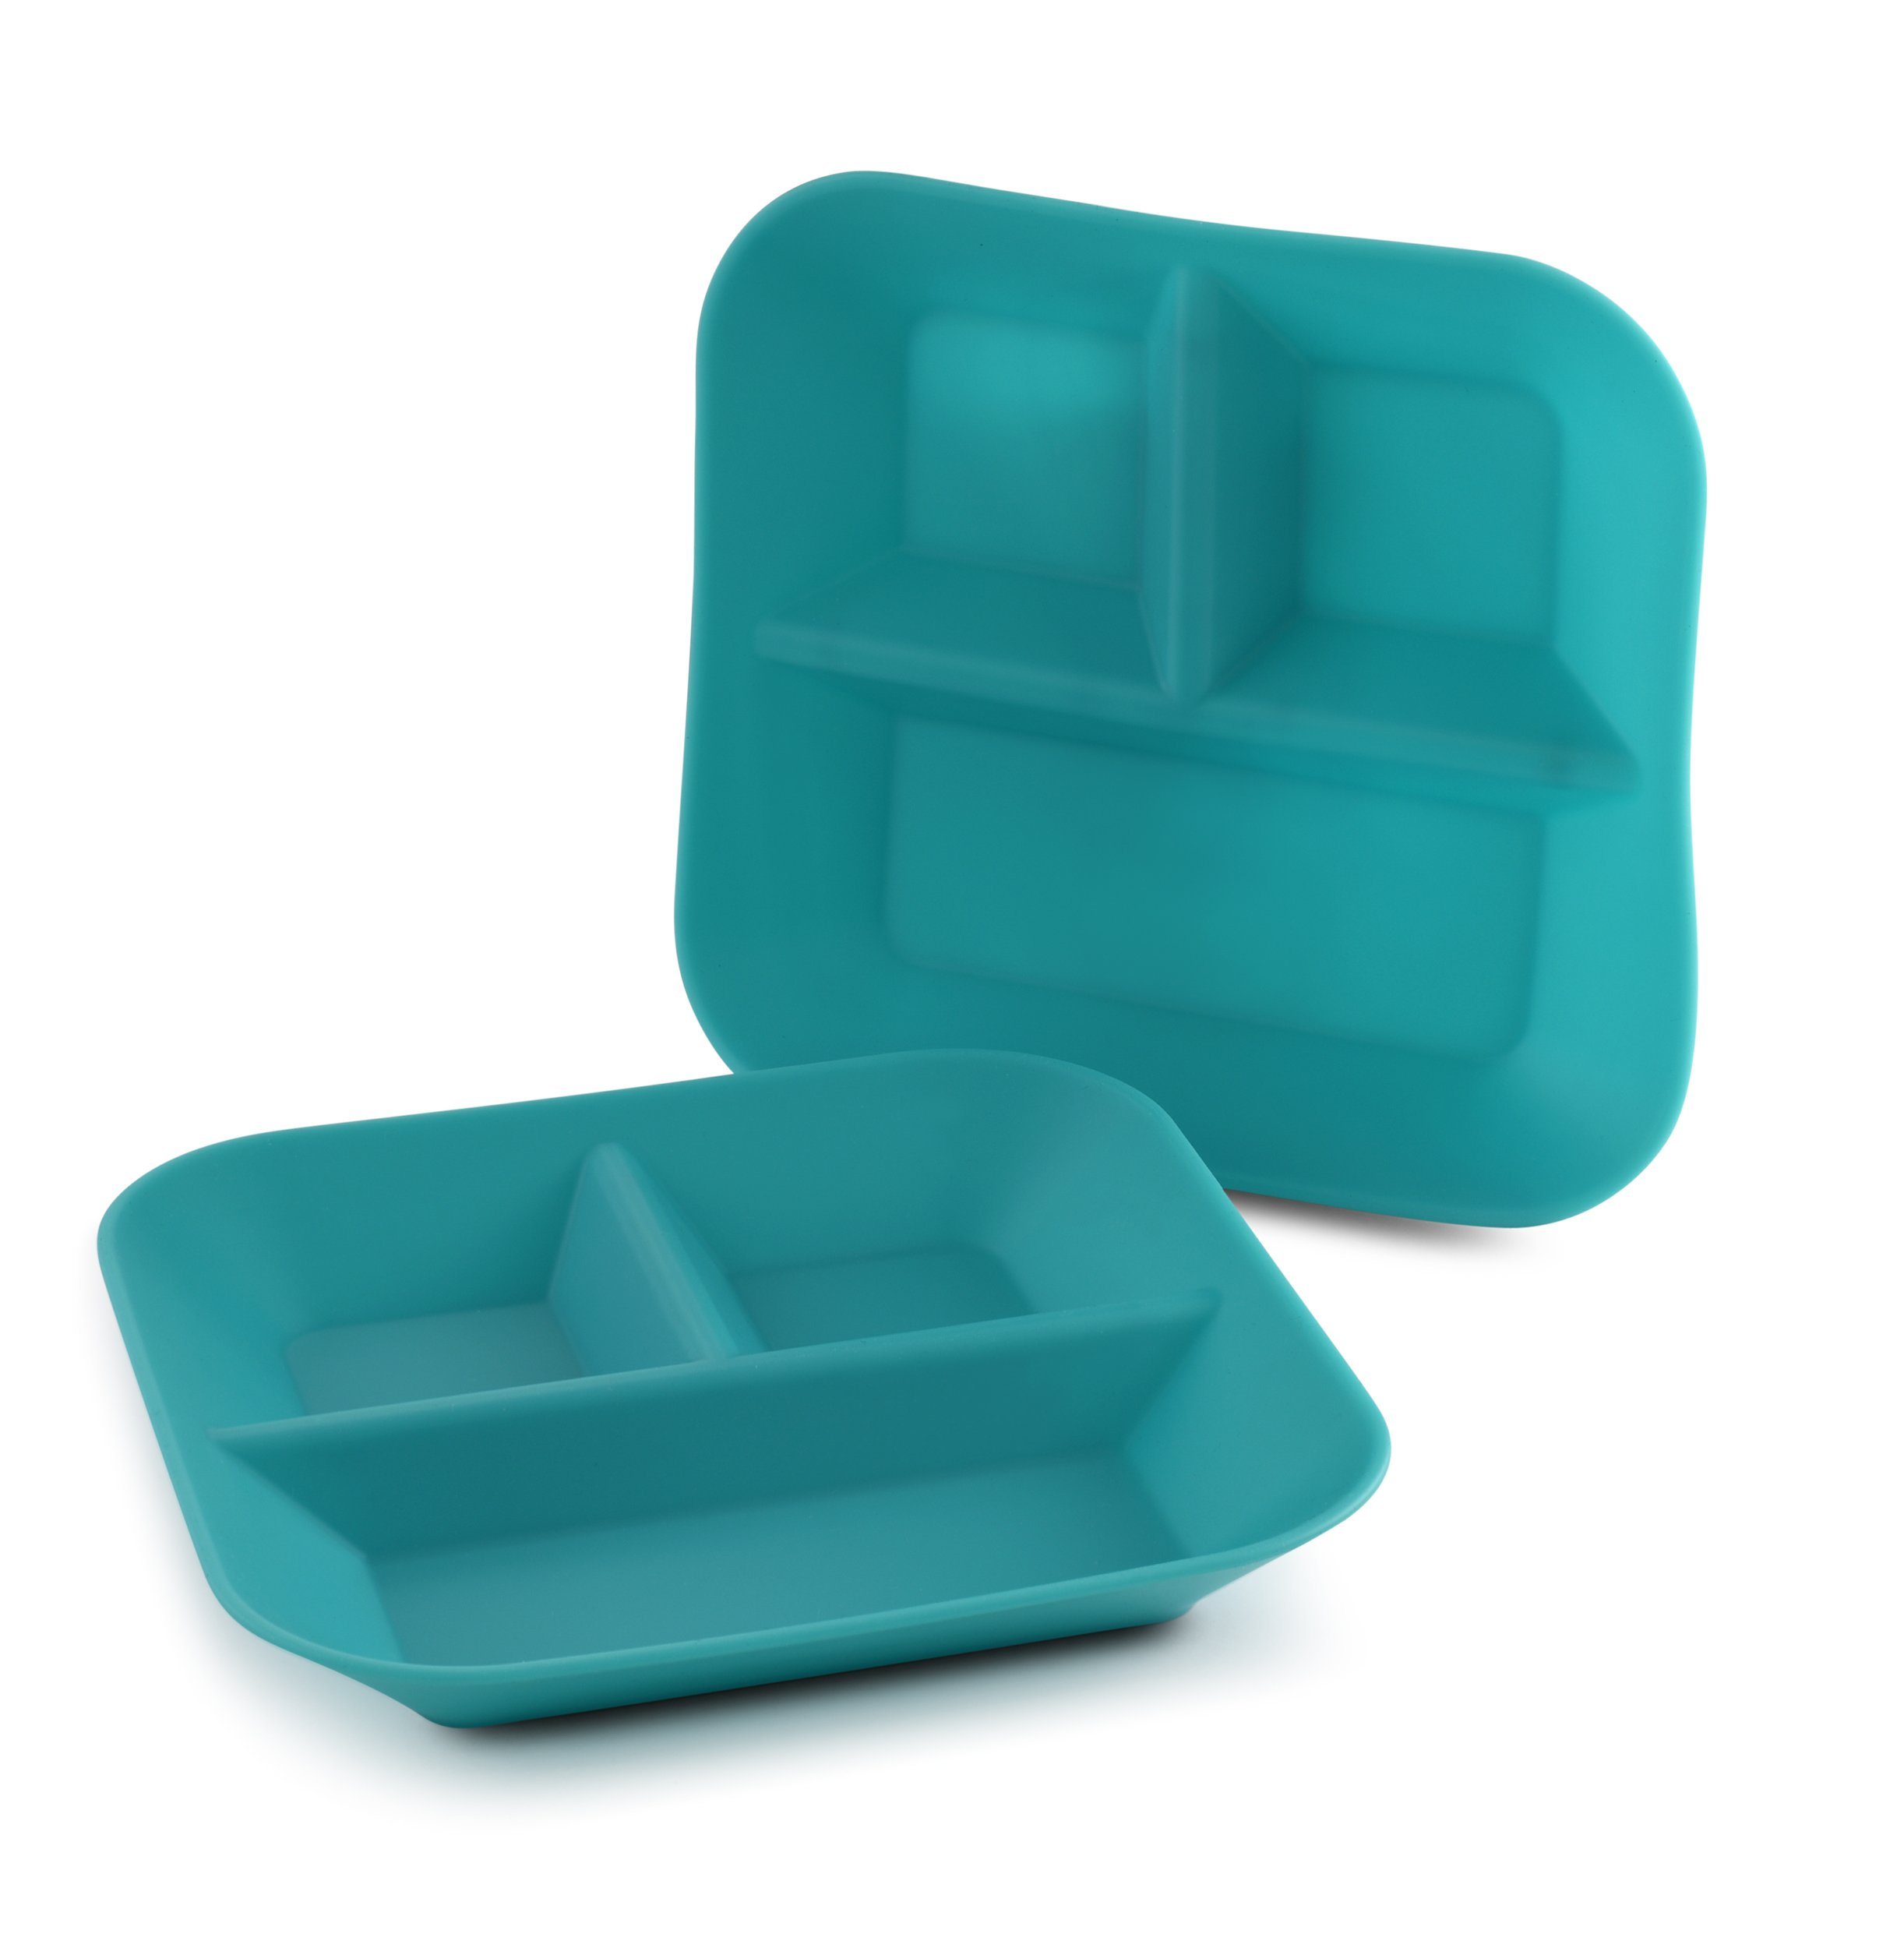 Made in The USA - 2-Pack - Silicone Plates for Babies & Kids by Kiddiebites - BPA, BPS, PVC, Phthalate, Cadmium, and Lead Free, FDA Approved Silicone, Divided Child's Placemat Set (Teal)